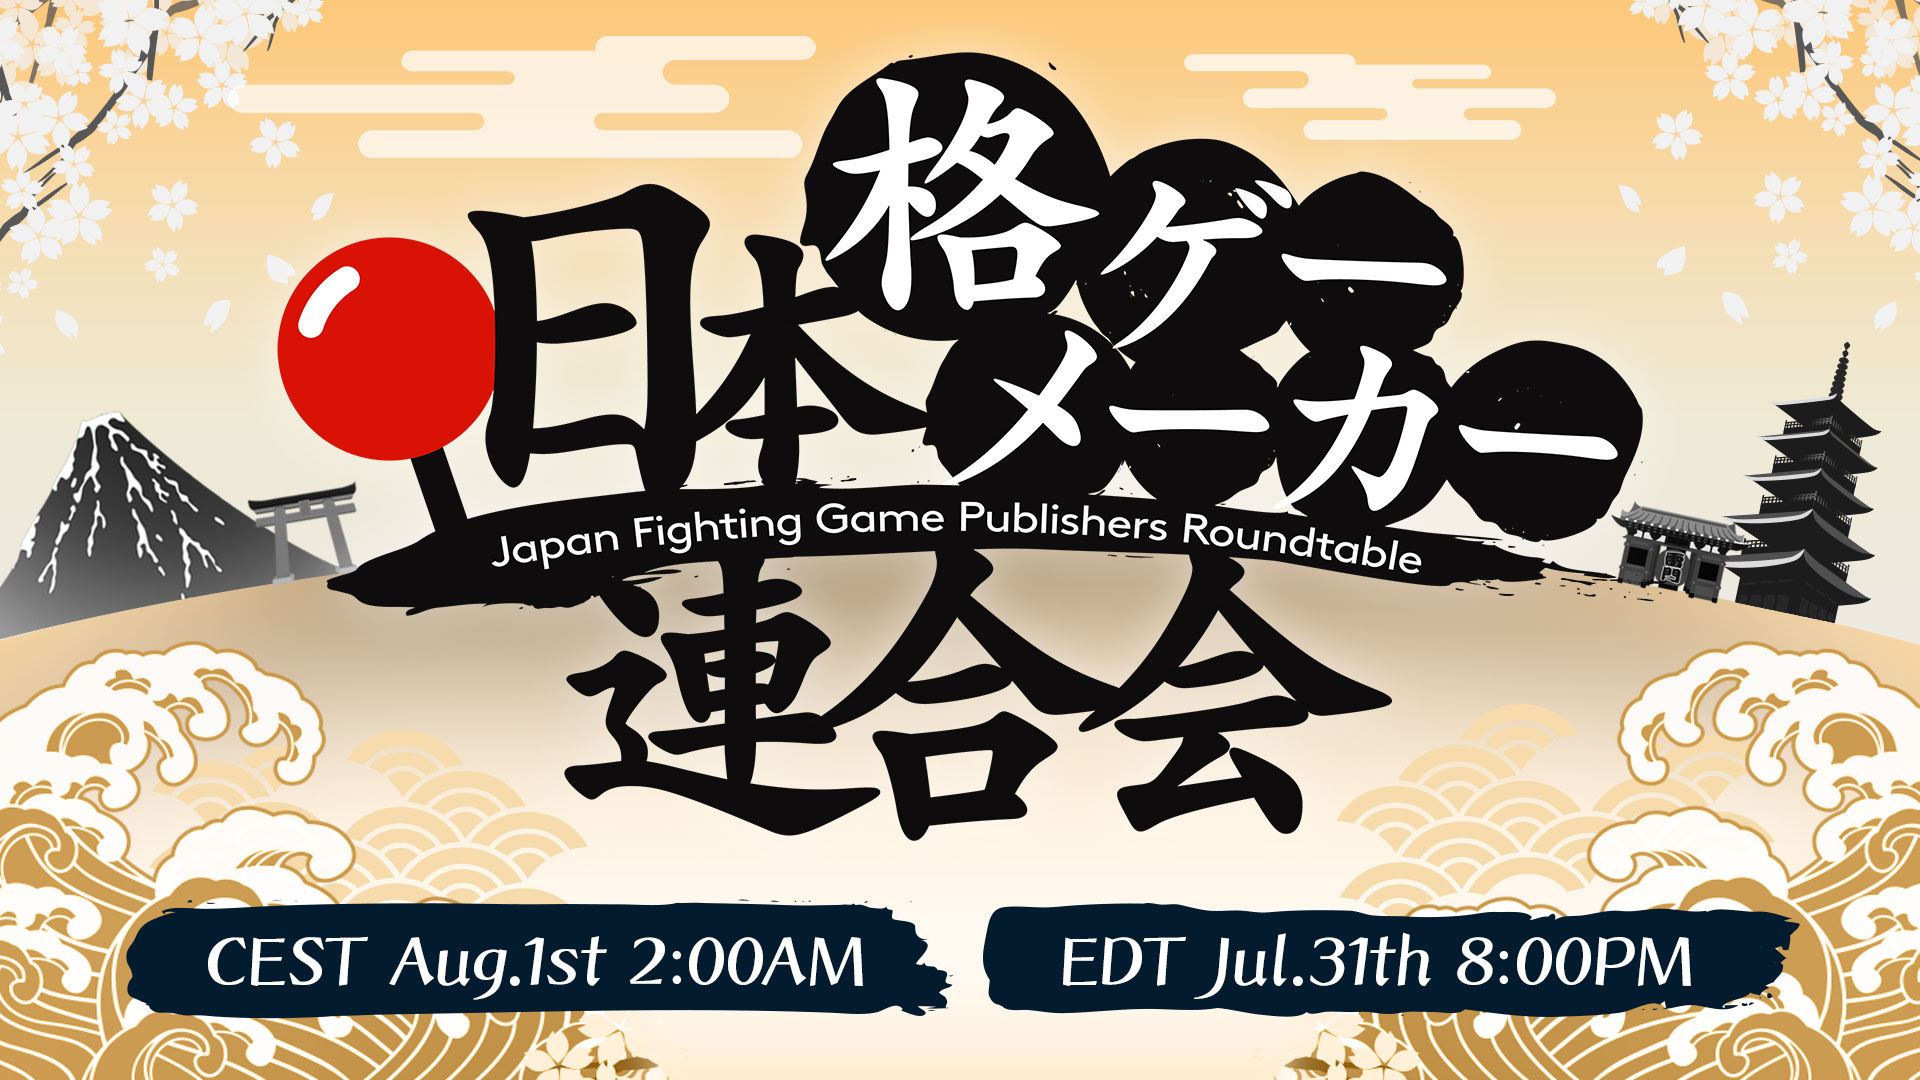 Japan Fighting Game Publishers Roundtable annunciata per agosto